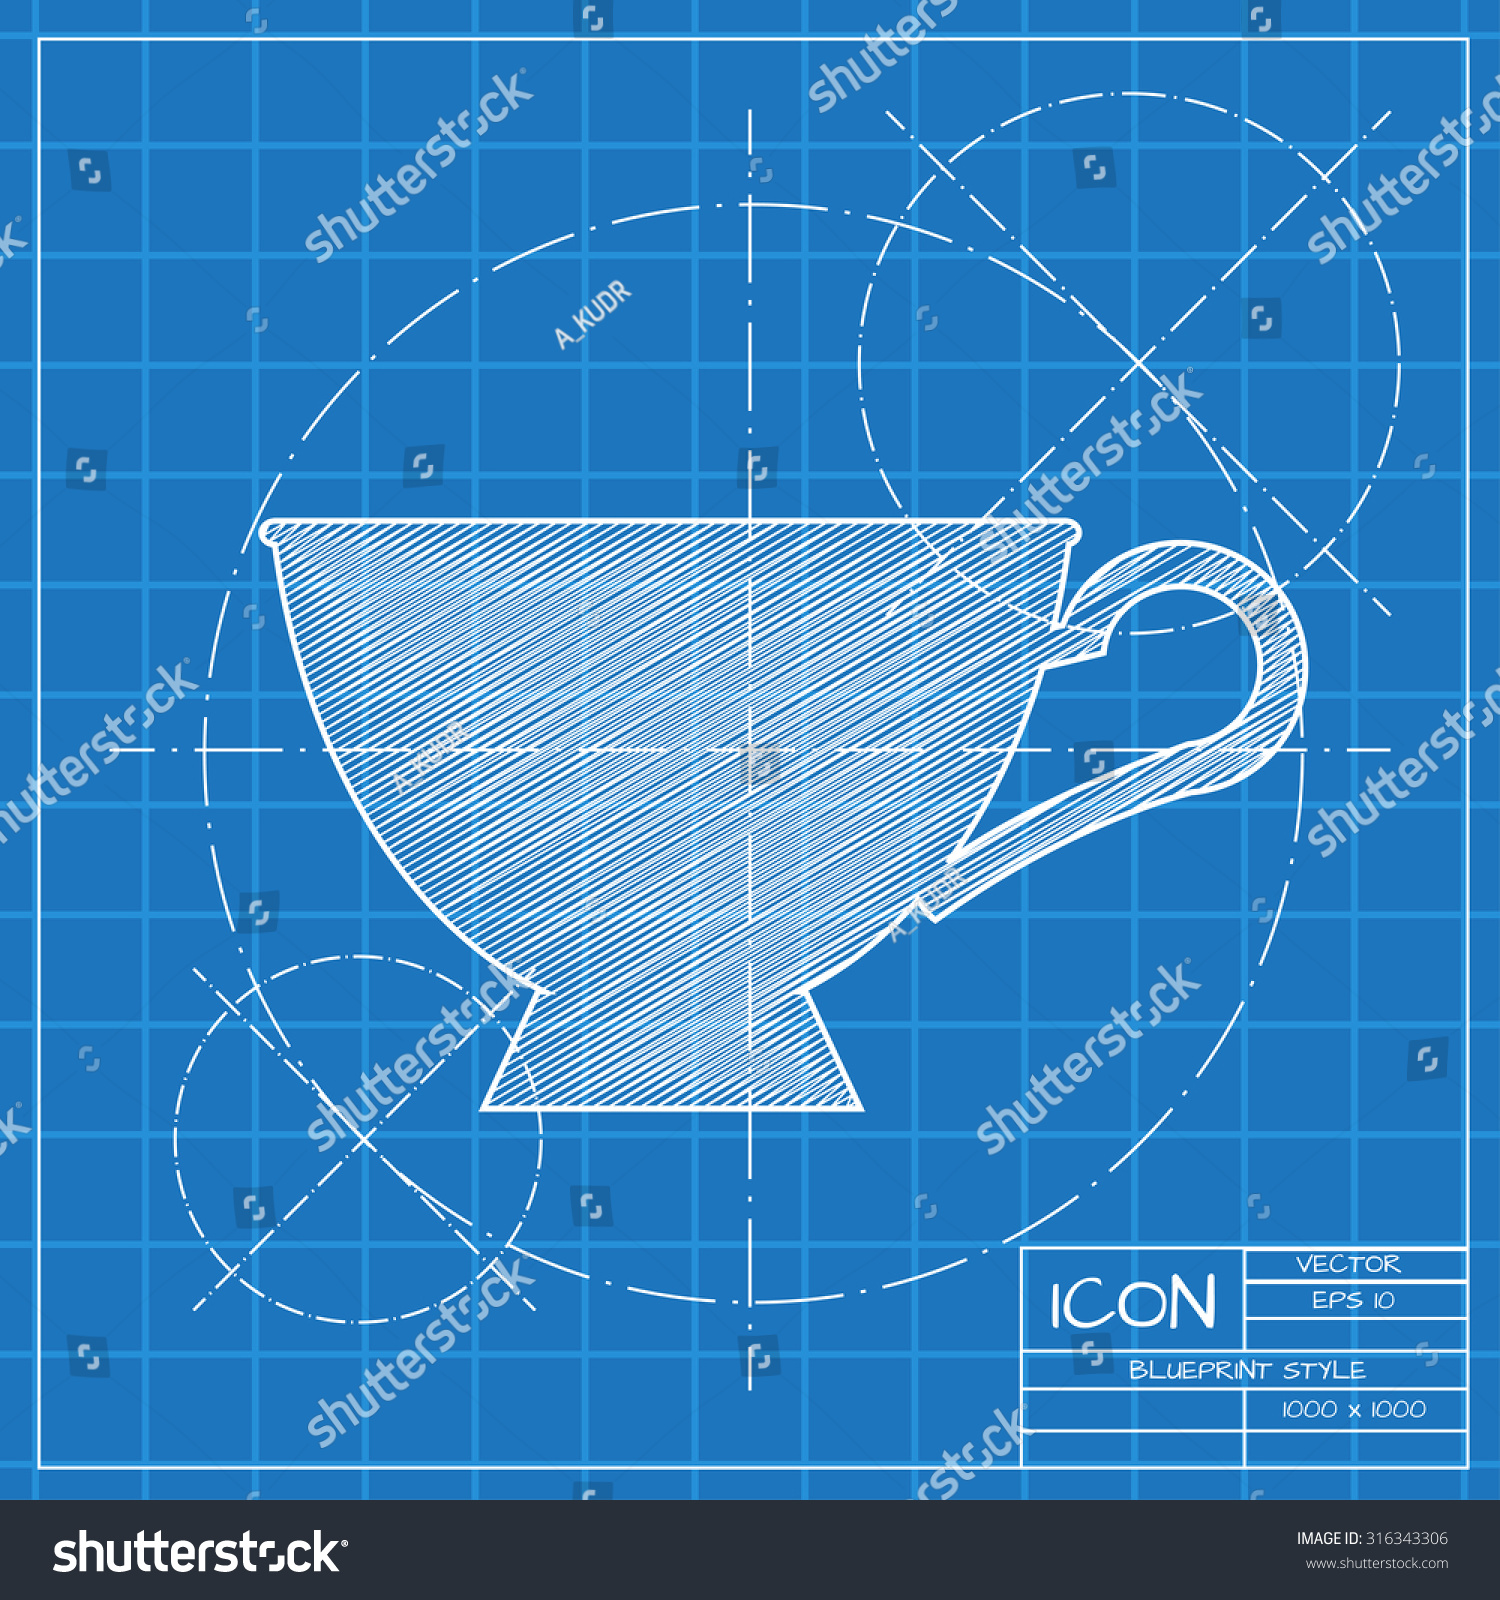 Vector blueprint cup tea coffee icon vectores en stock 316343306 vector blueprint cup for tea or coffee icon on engineer or architect background malvernweather Image collections